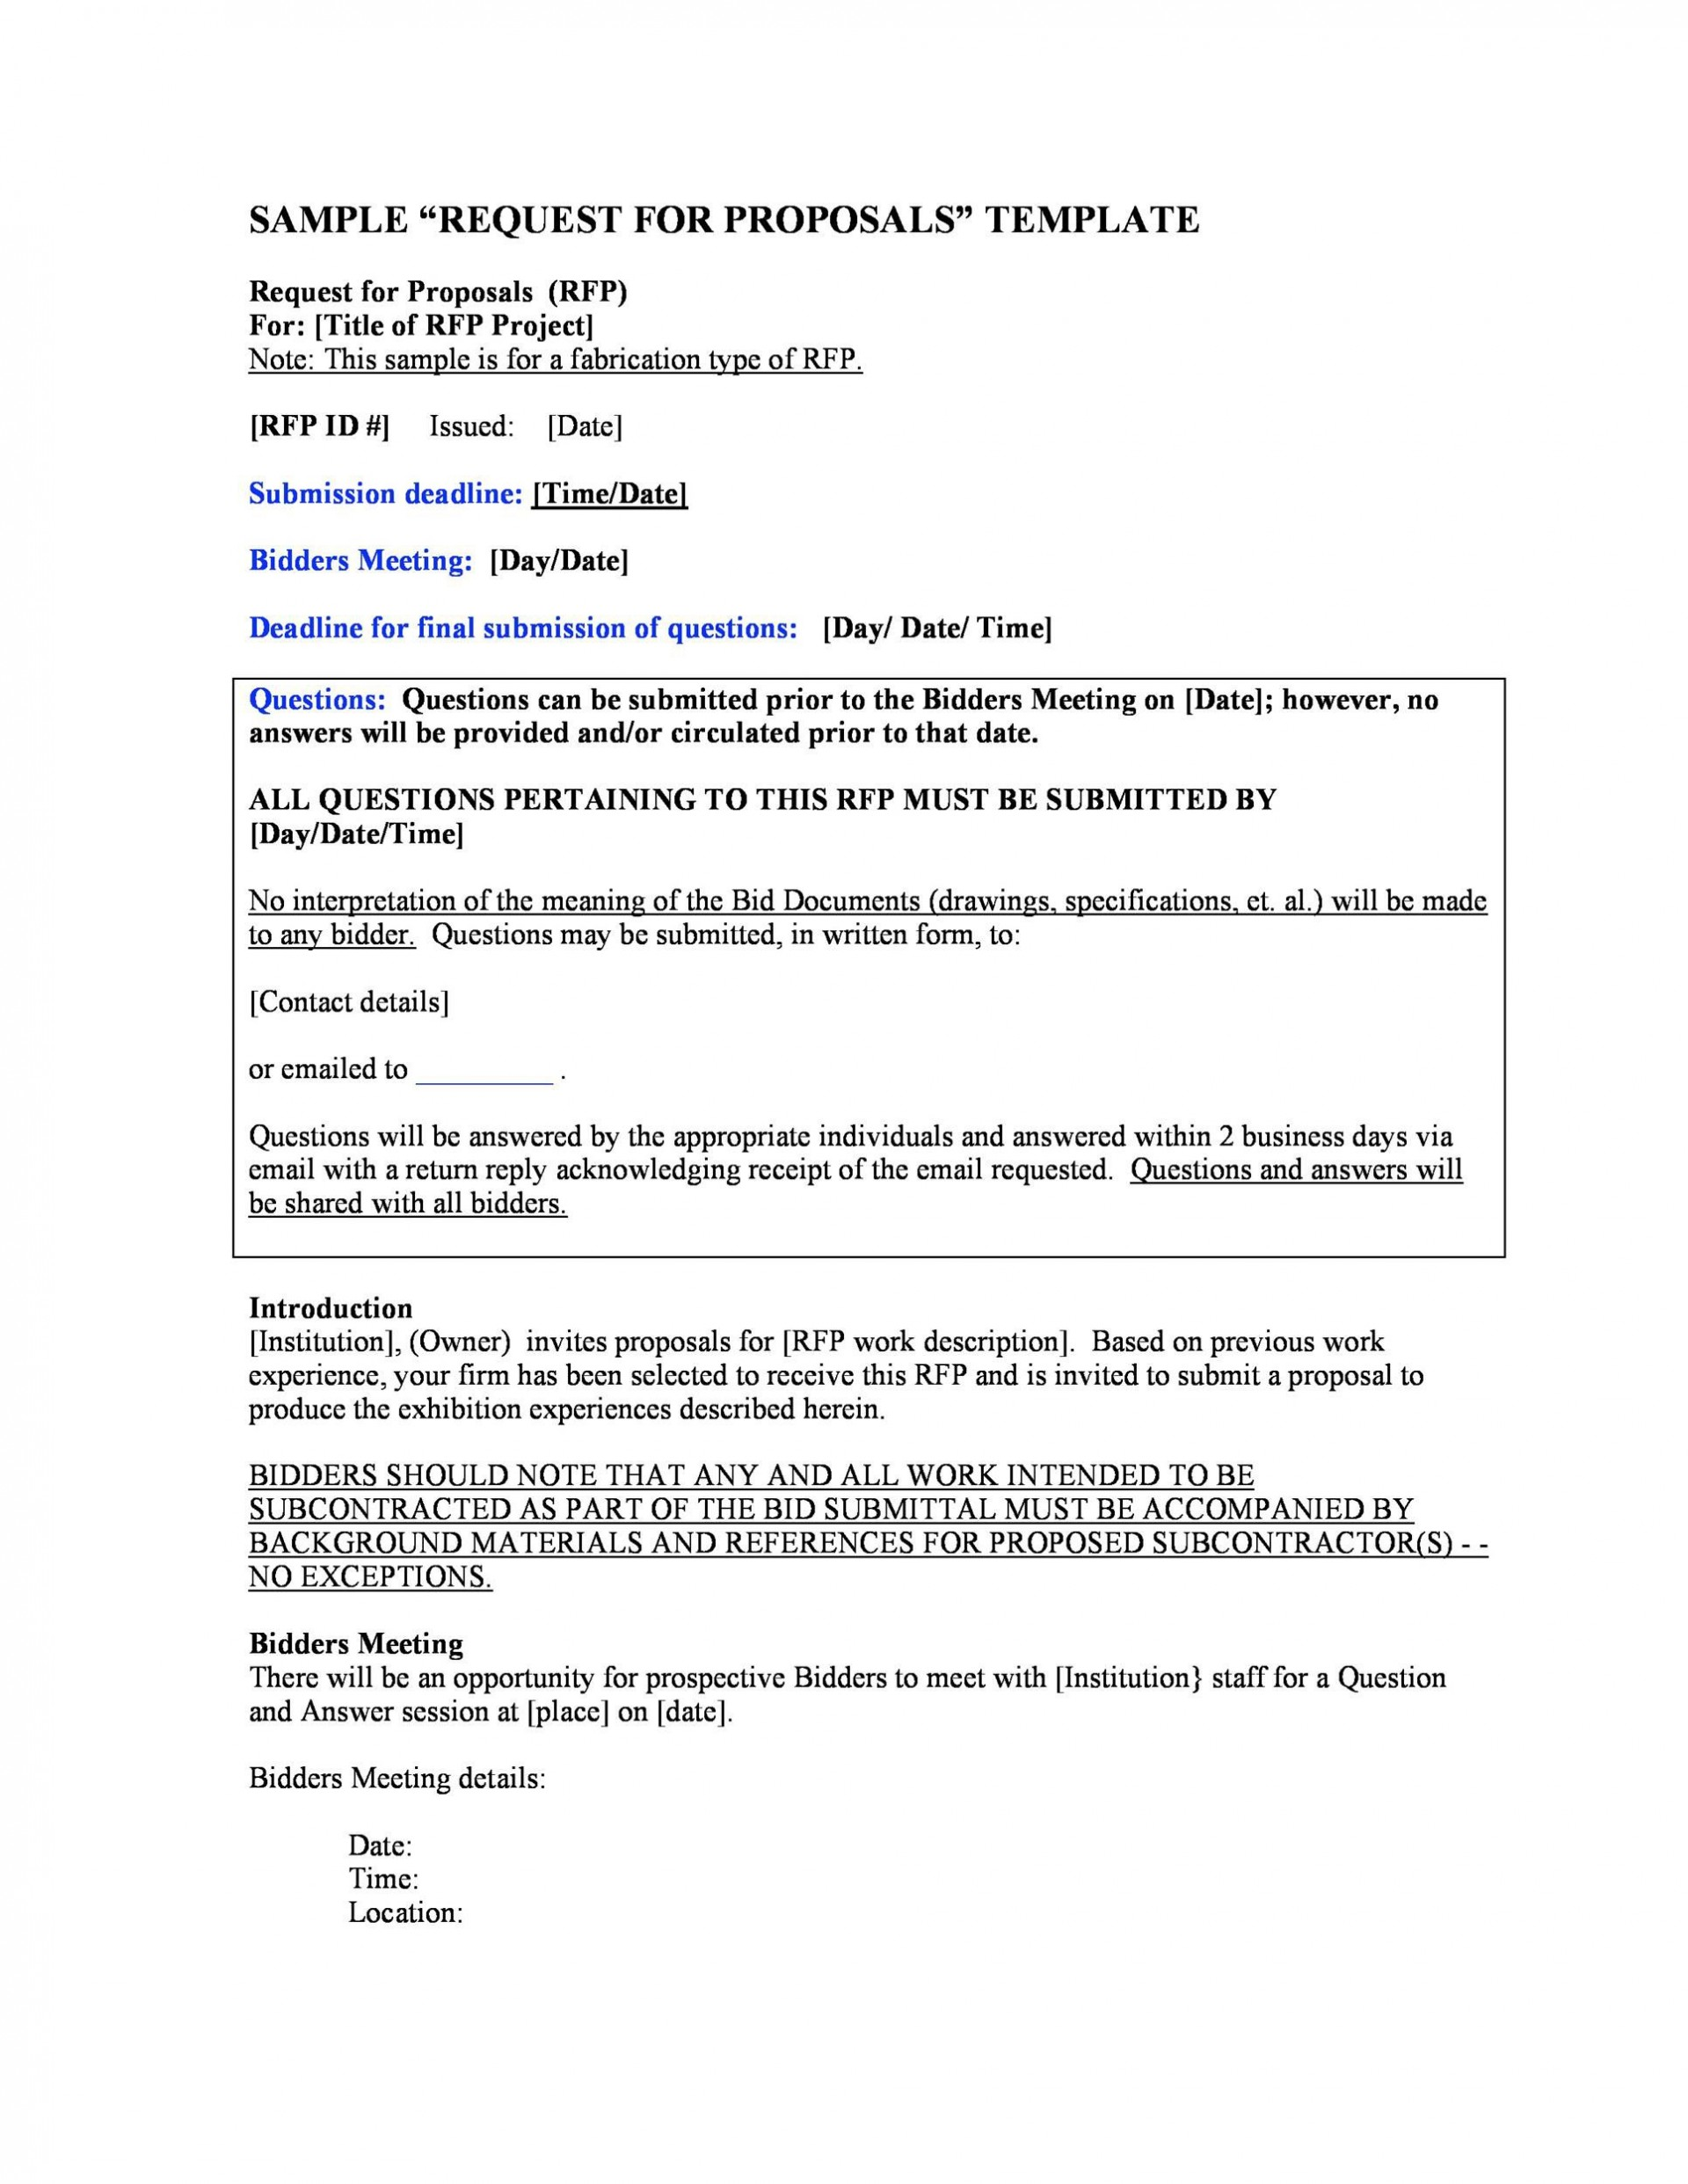 008 Excellent Request For Proposal Template Construction Concept  Rfp Residential1920